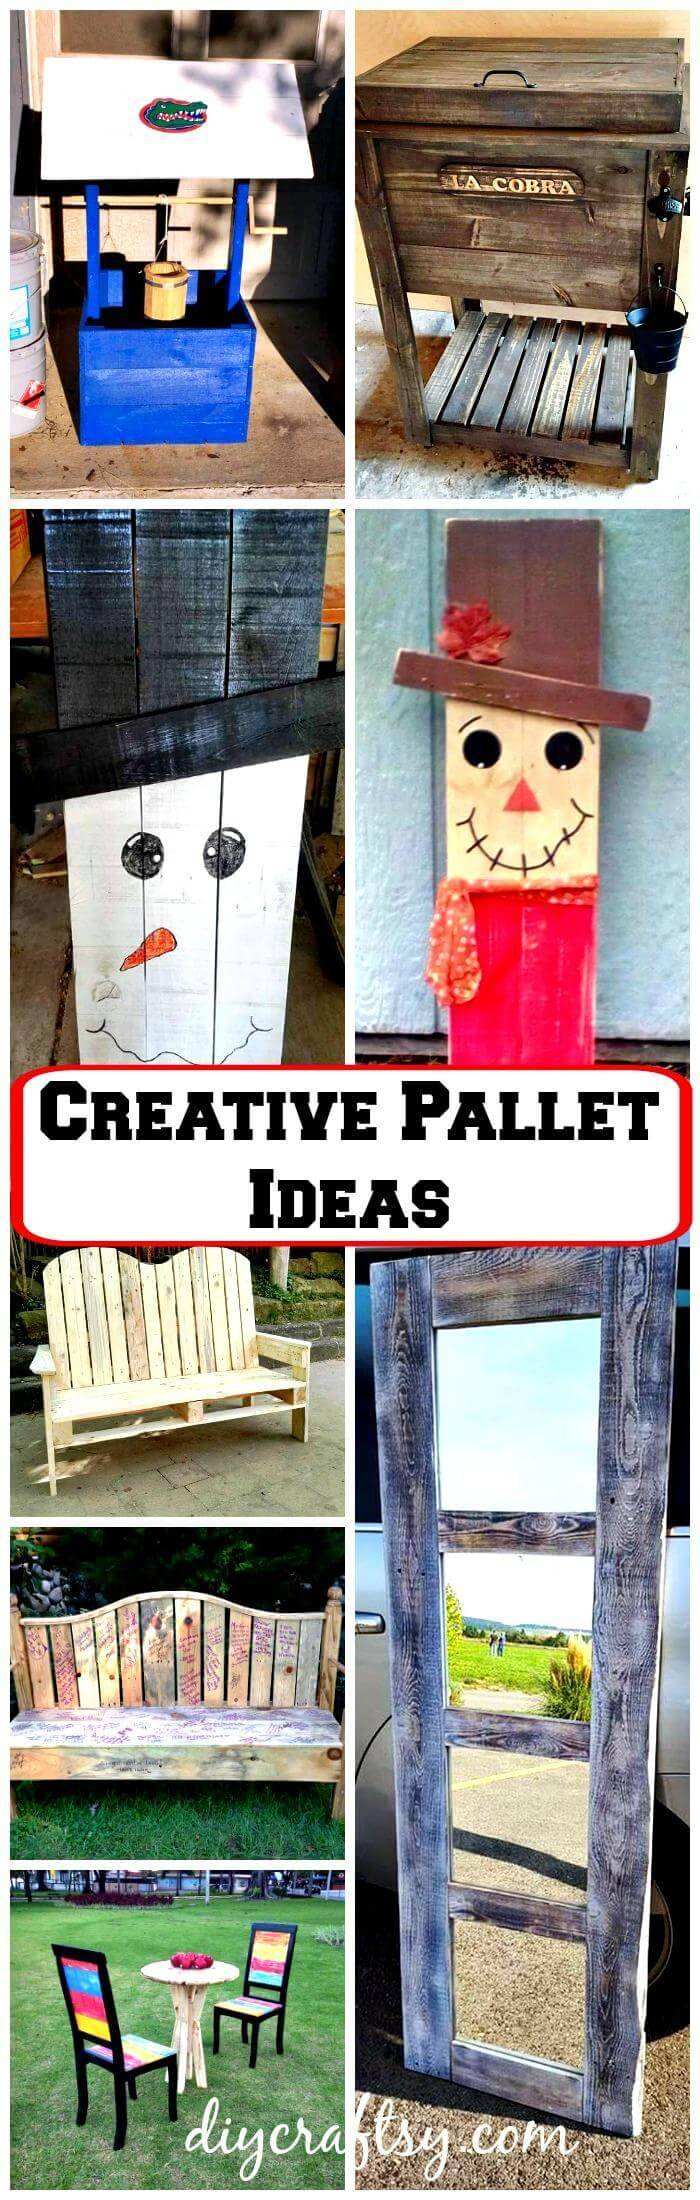 20 Creative Pallet Ideas To Decorate Your Home